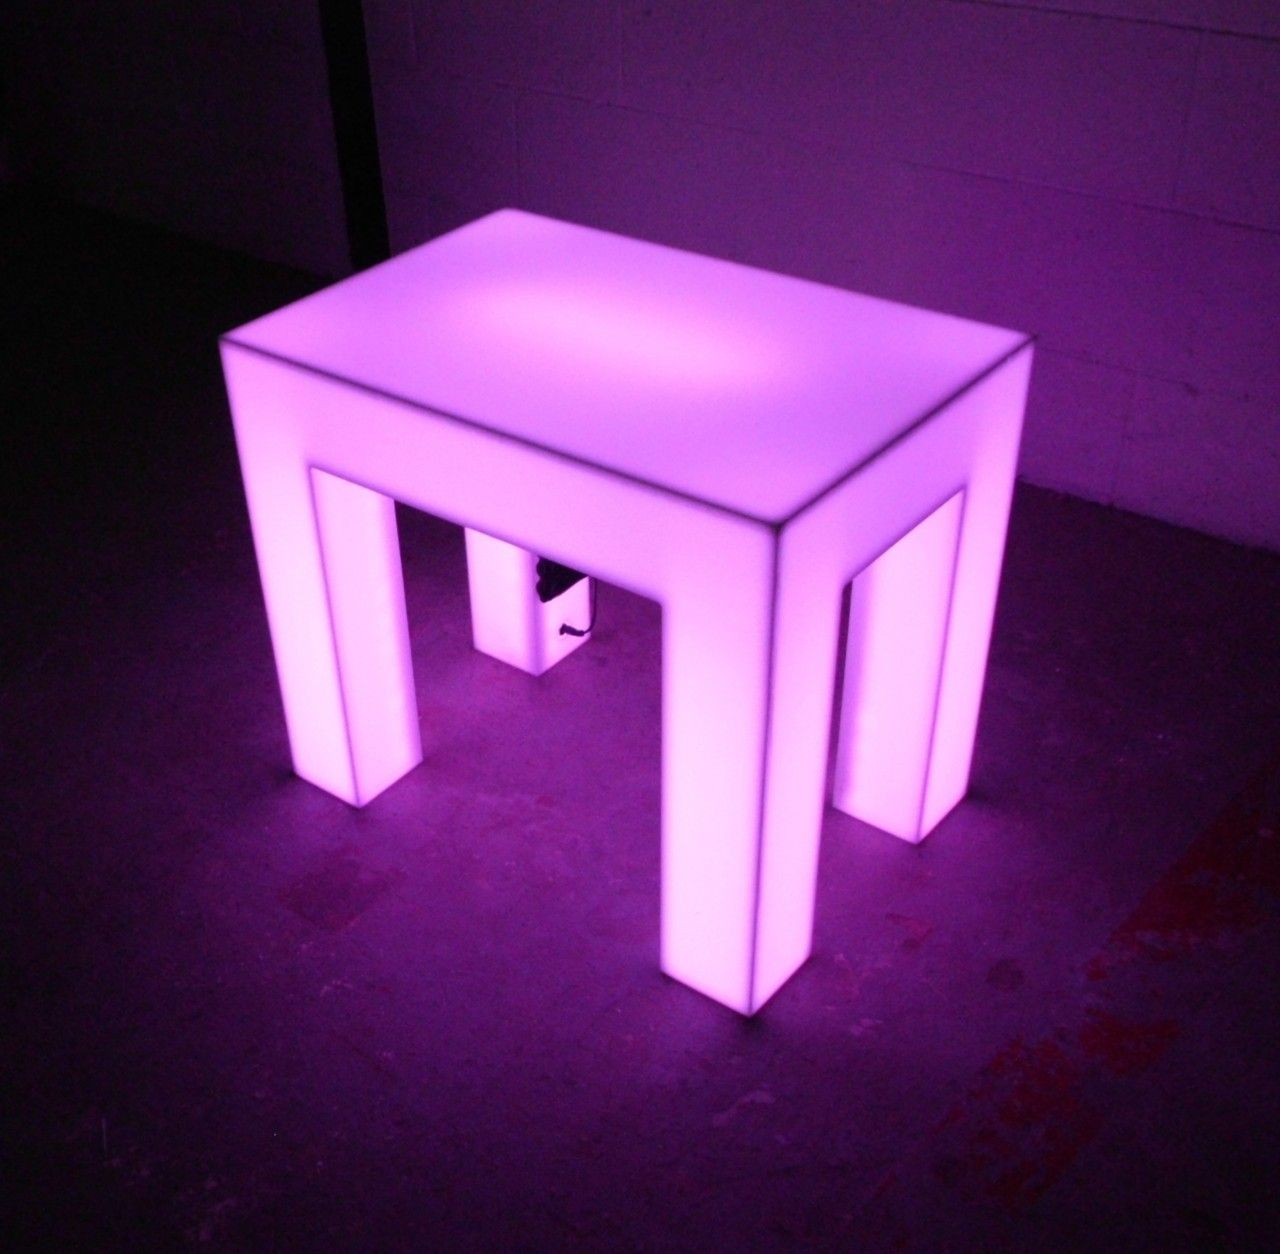 Light Up End Table - Rechargeable. Plexi GlassPlexiglass TableAcrylic ... & Light Up End Table - Rechargeable | Lights and Interiors